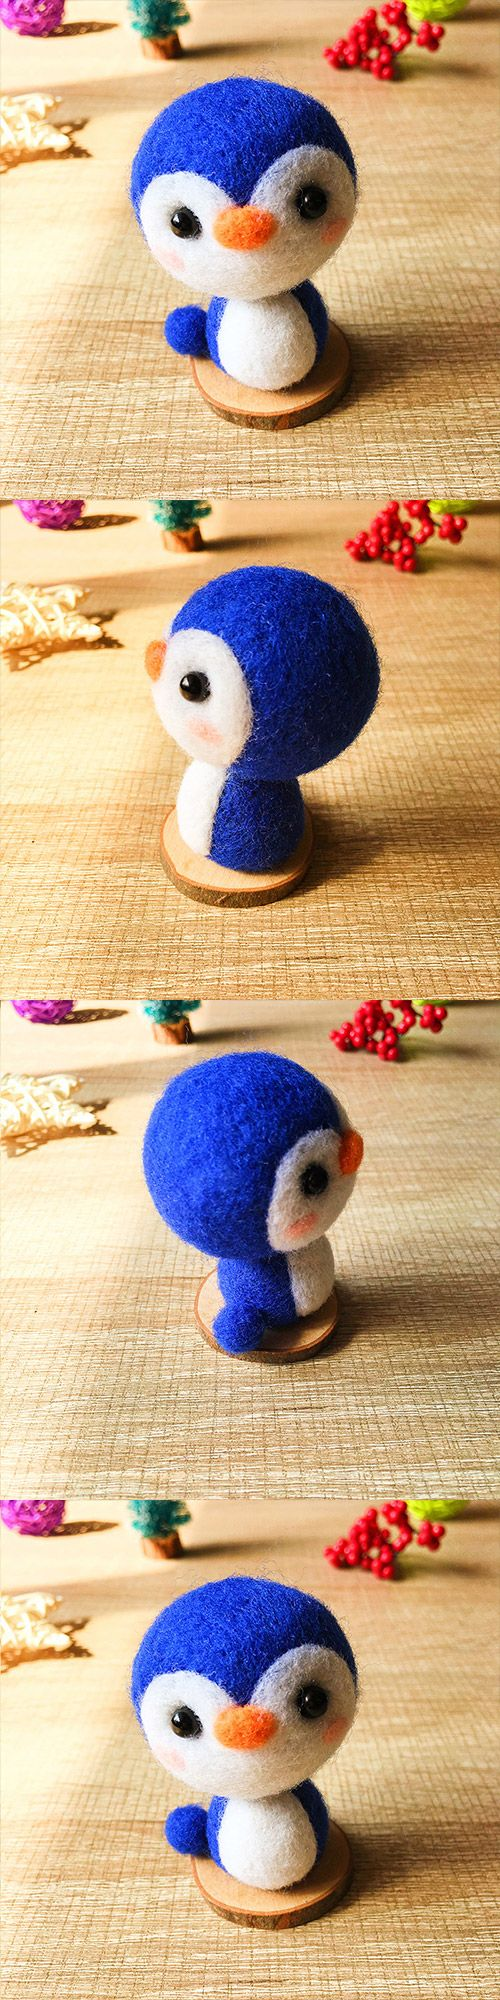 Handmade Needle felted felting kit project Animals Penguin cute for beginners starters